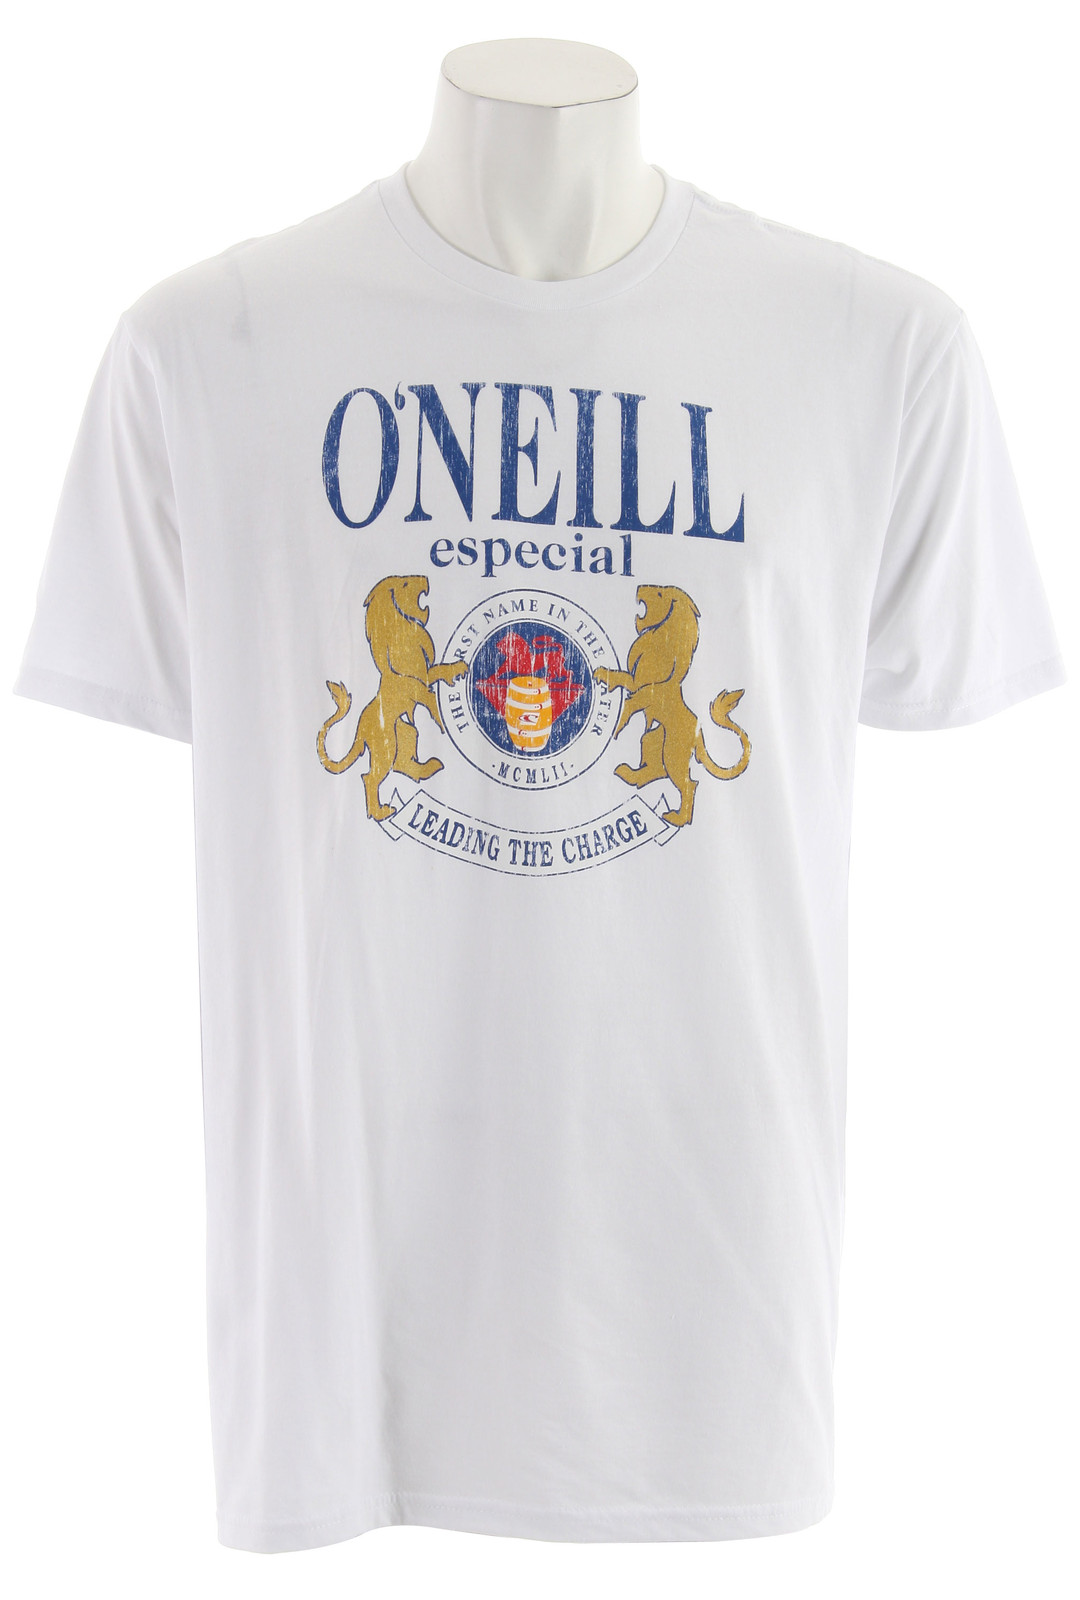 O'Neill Cinco T-Shirt White  oneill-cinco-t-wht-11.jpg